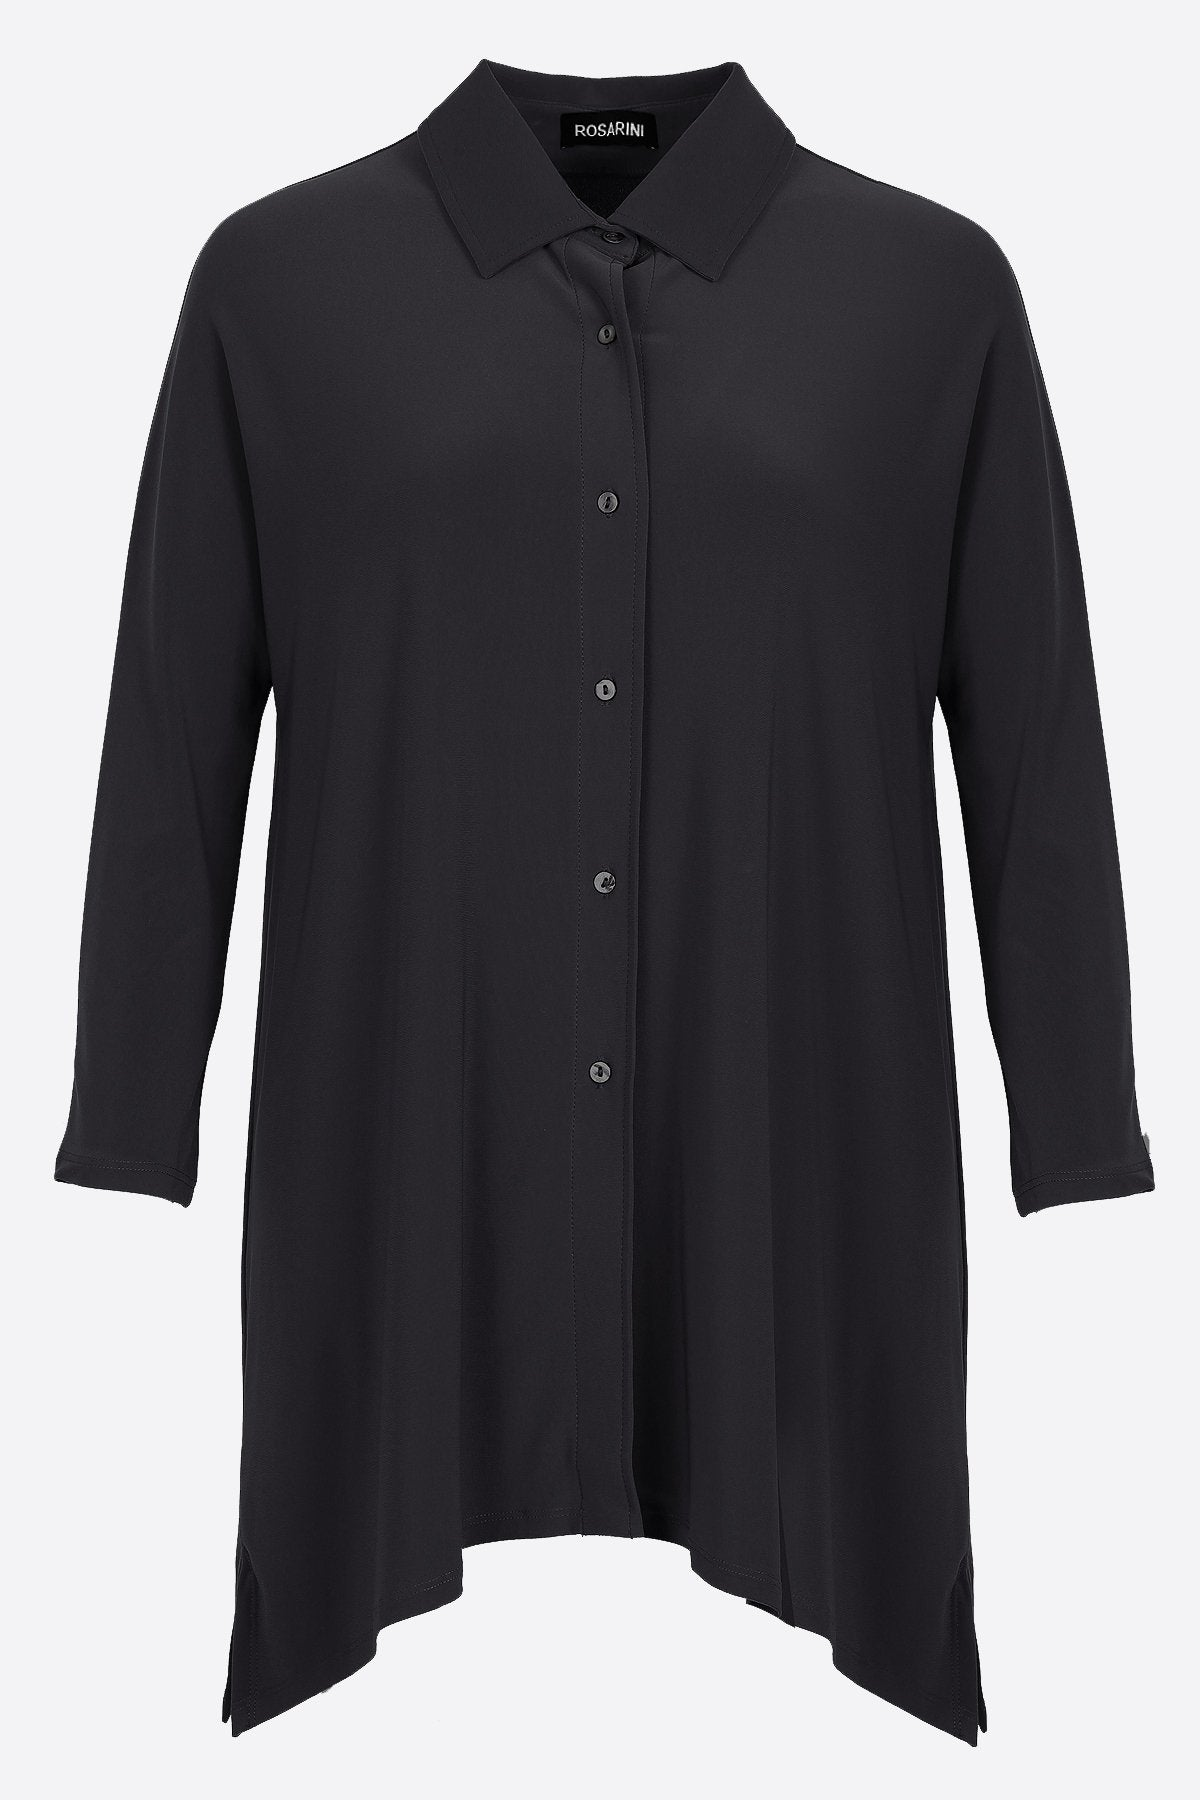 Button Shirt with Curved Hem Black